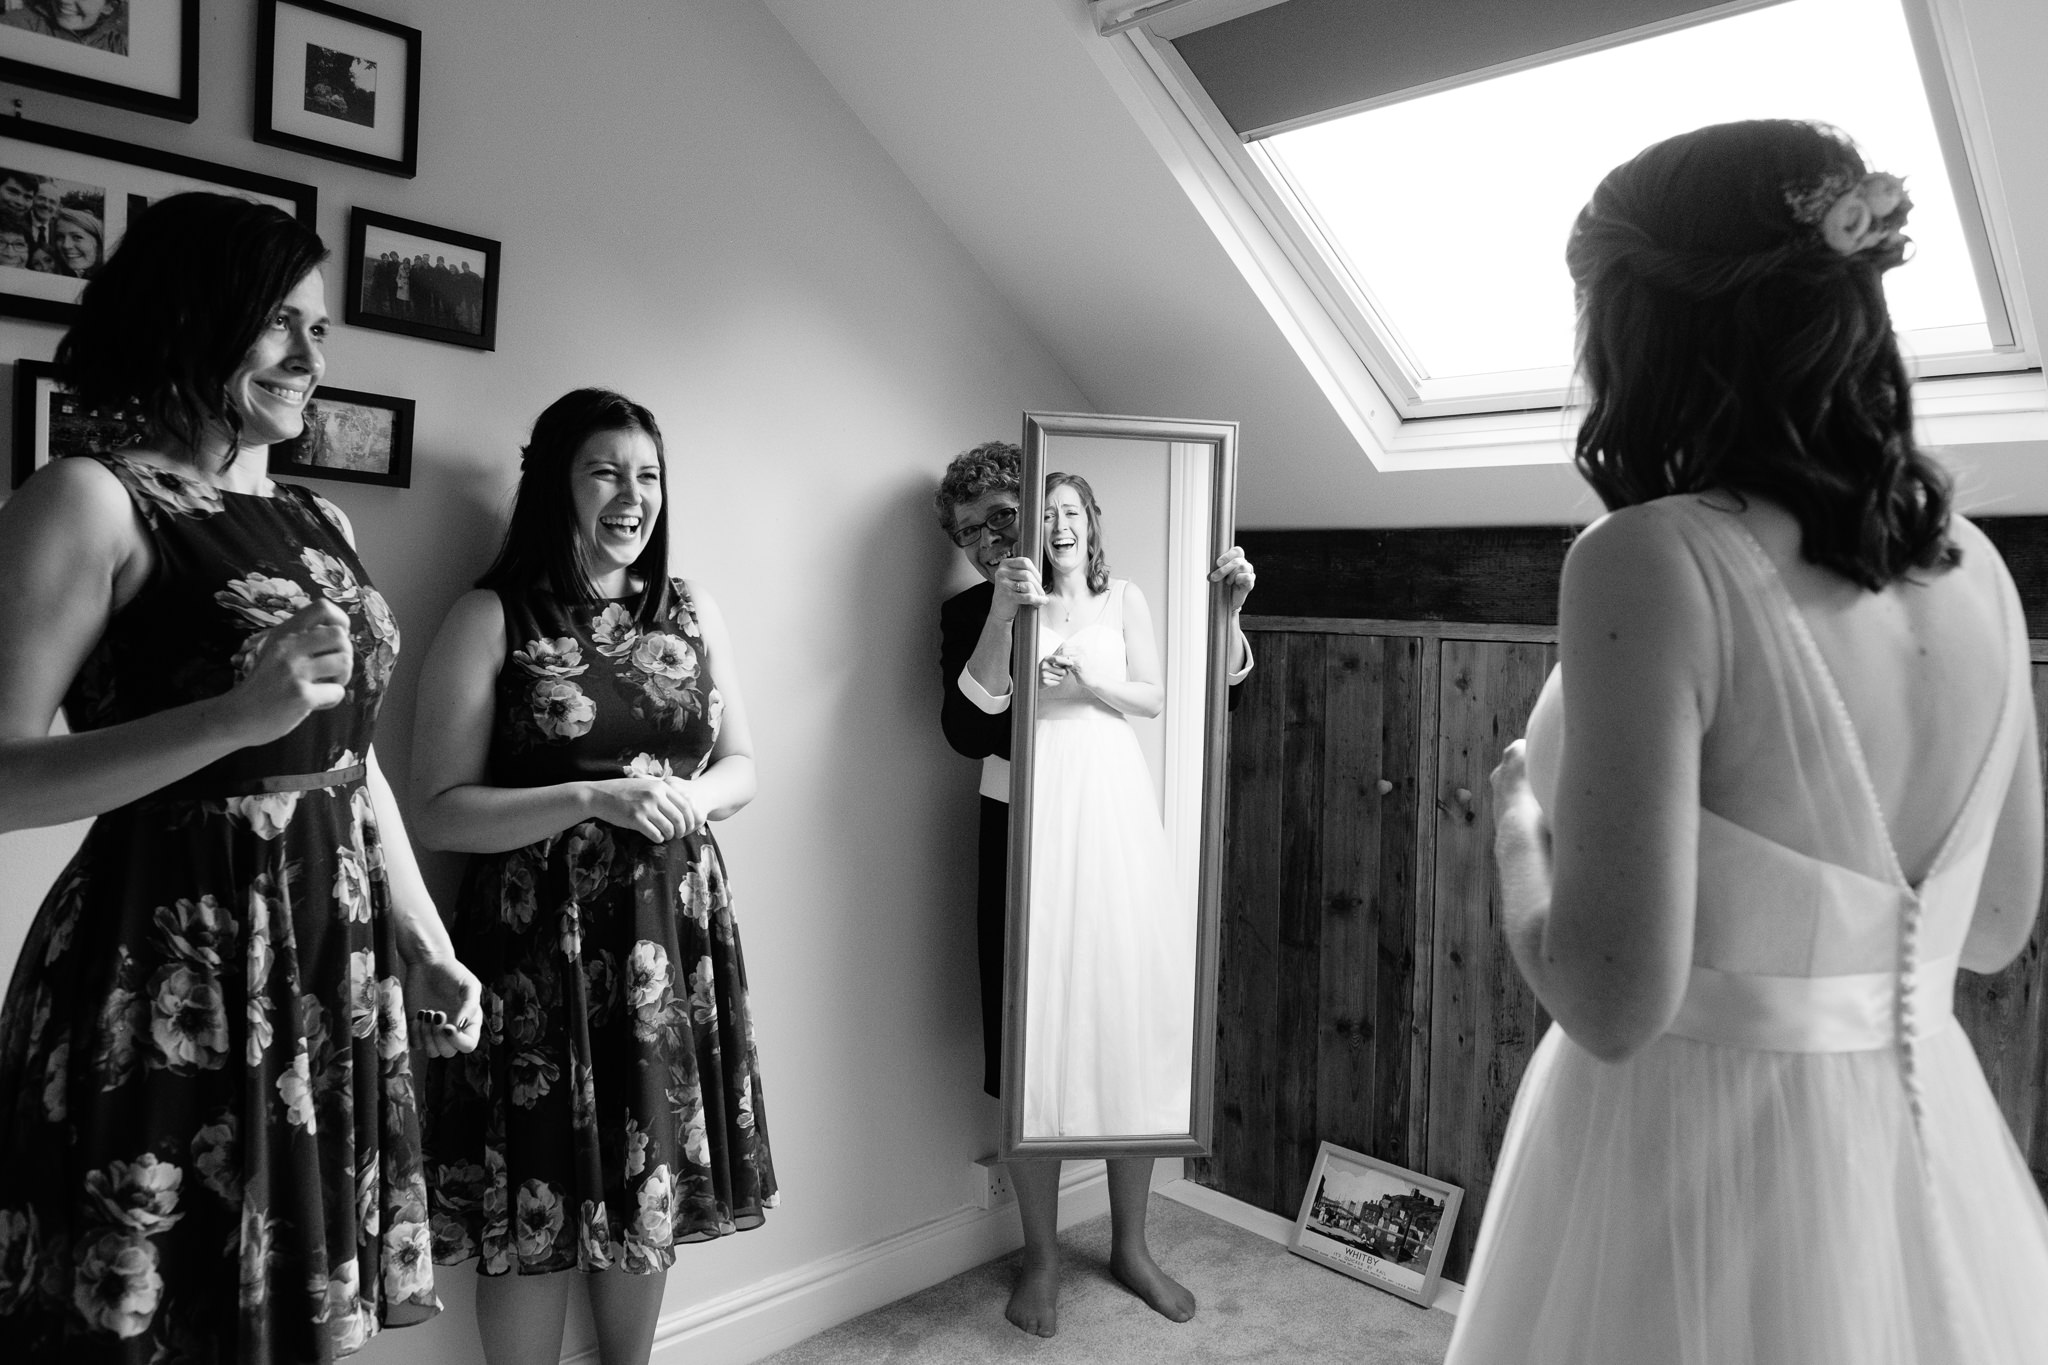 05-james--lauras-wedding-at-sheffield-manor-lodge-bw_41519273561_o.jpg